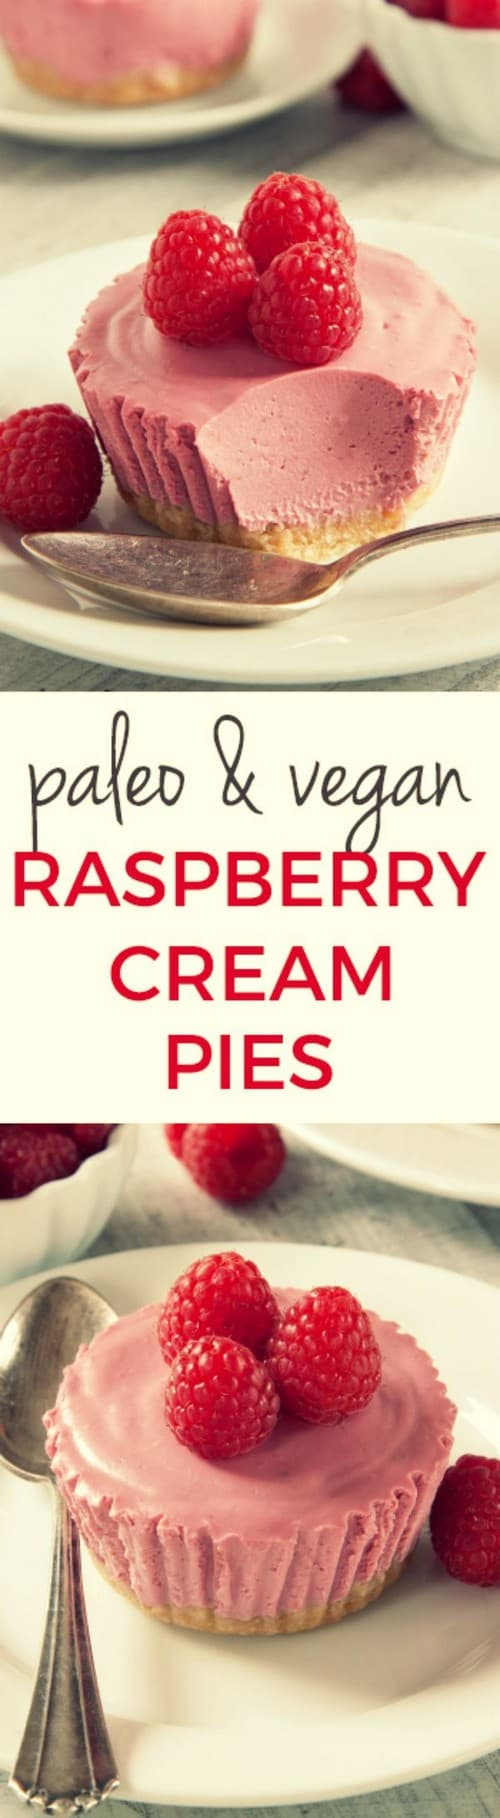 Mediterranean Paleo Raspberry Cream Pies Recipe